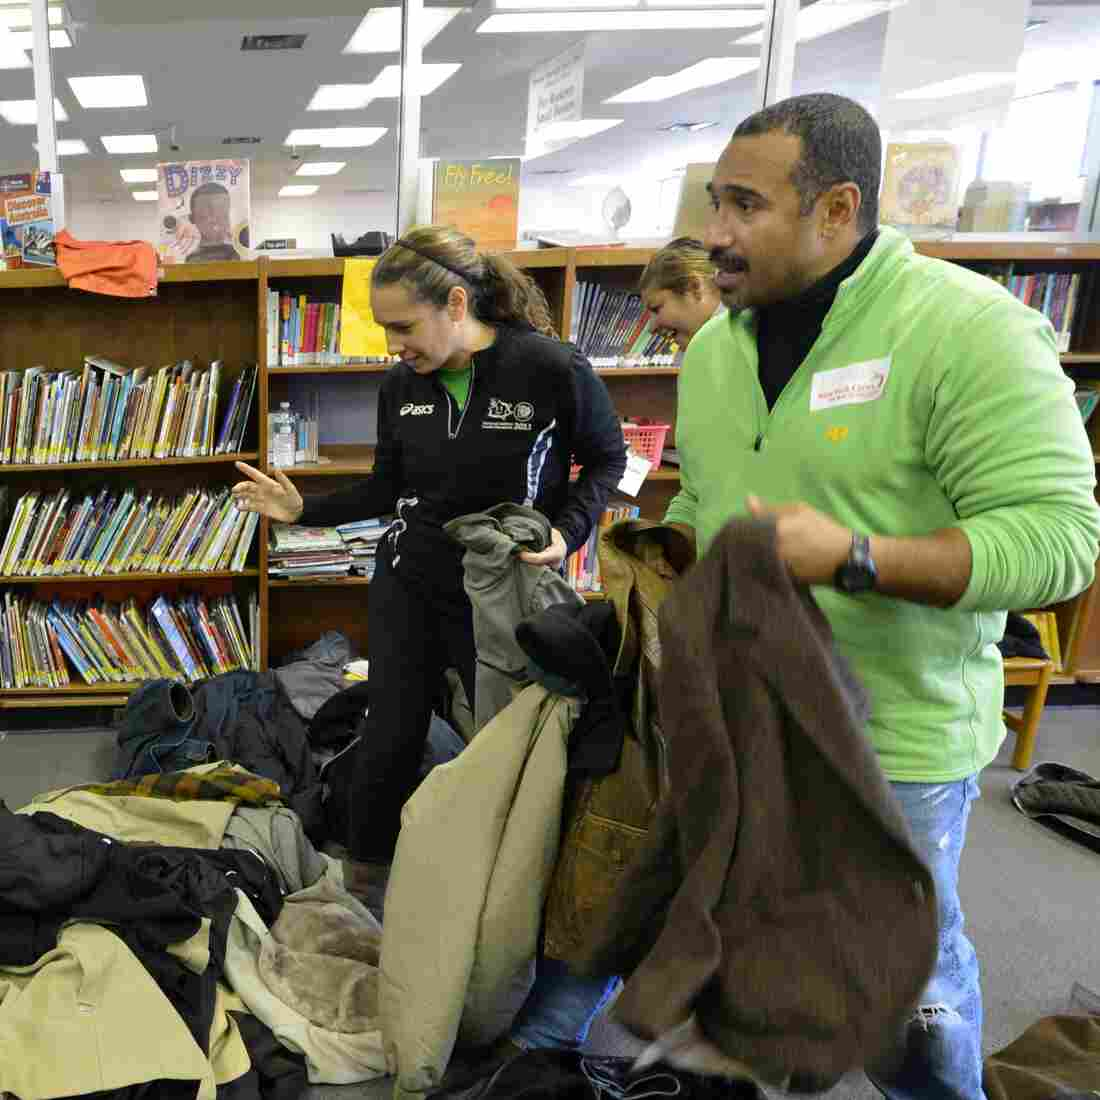 Volunteers at the Queens Library in the Far Rockaway section of Queens hand out coats to people affected by Hurricane Sandy.